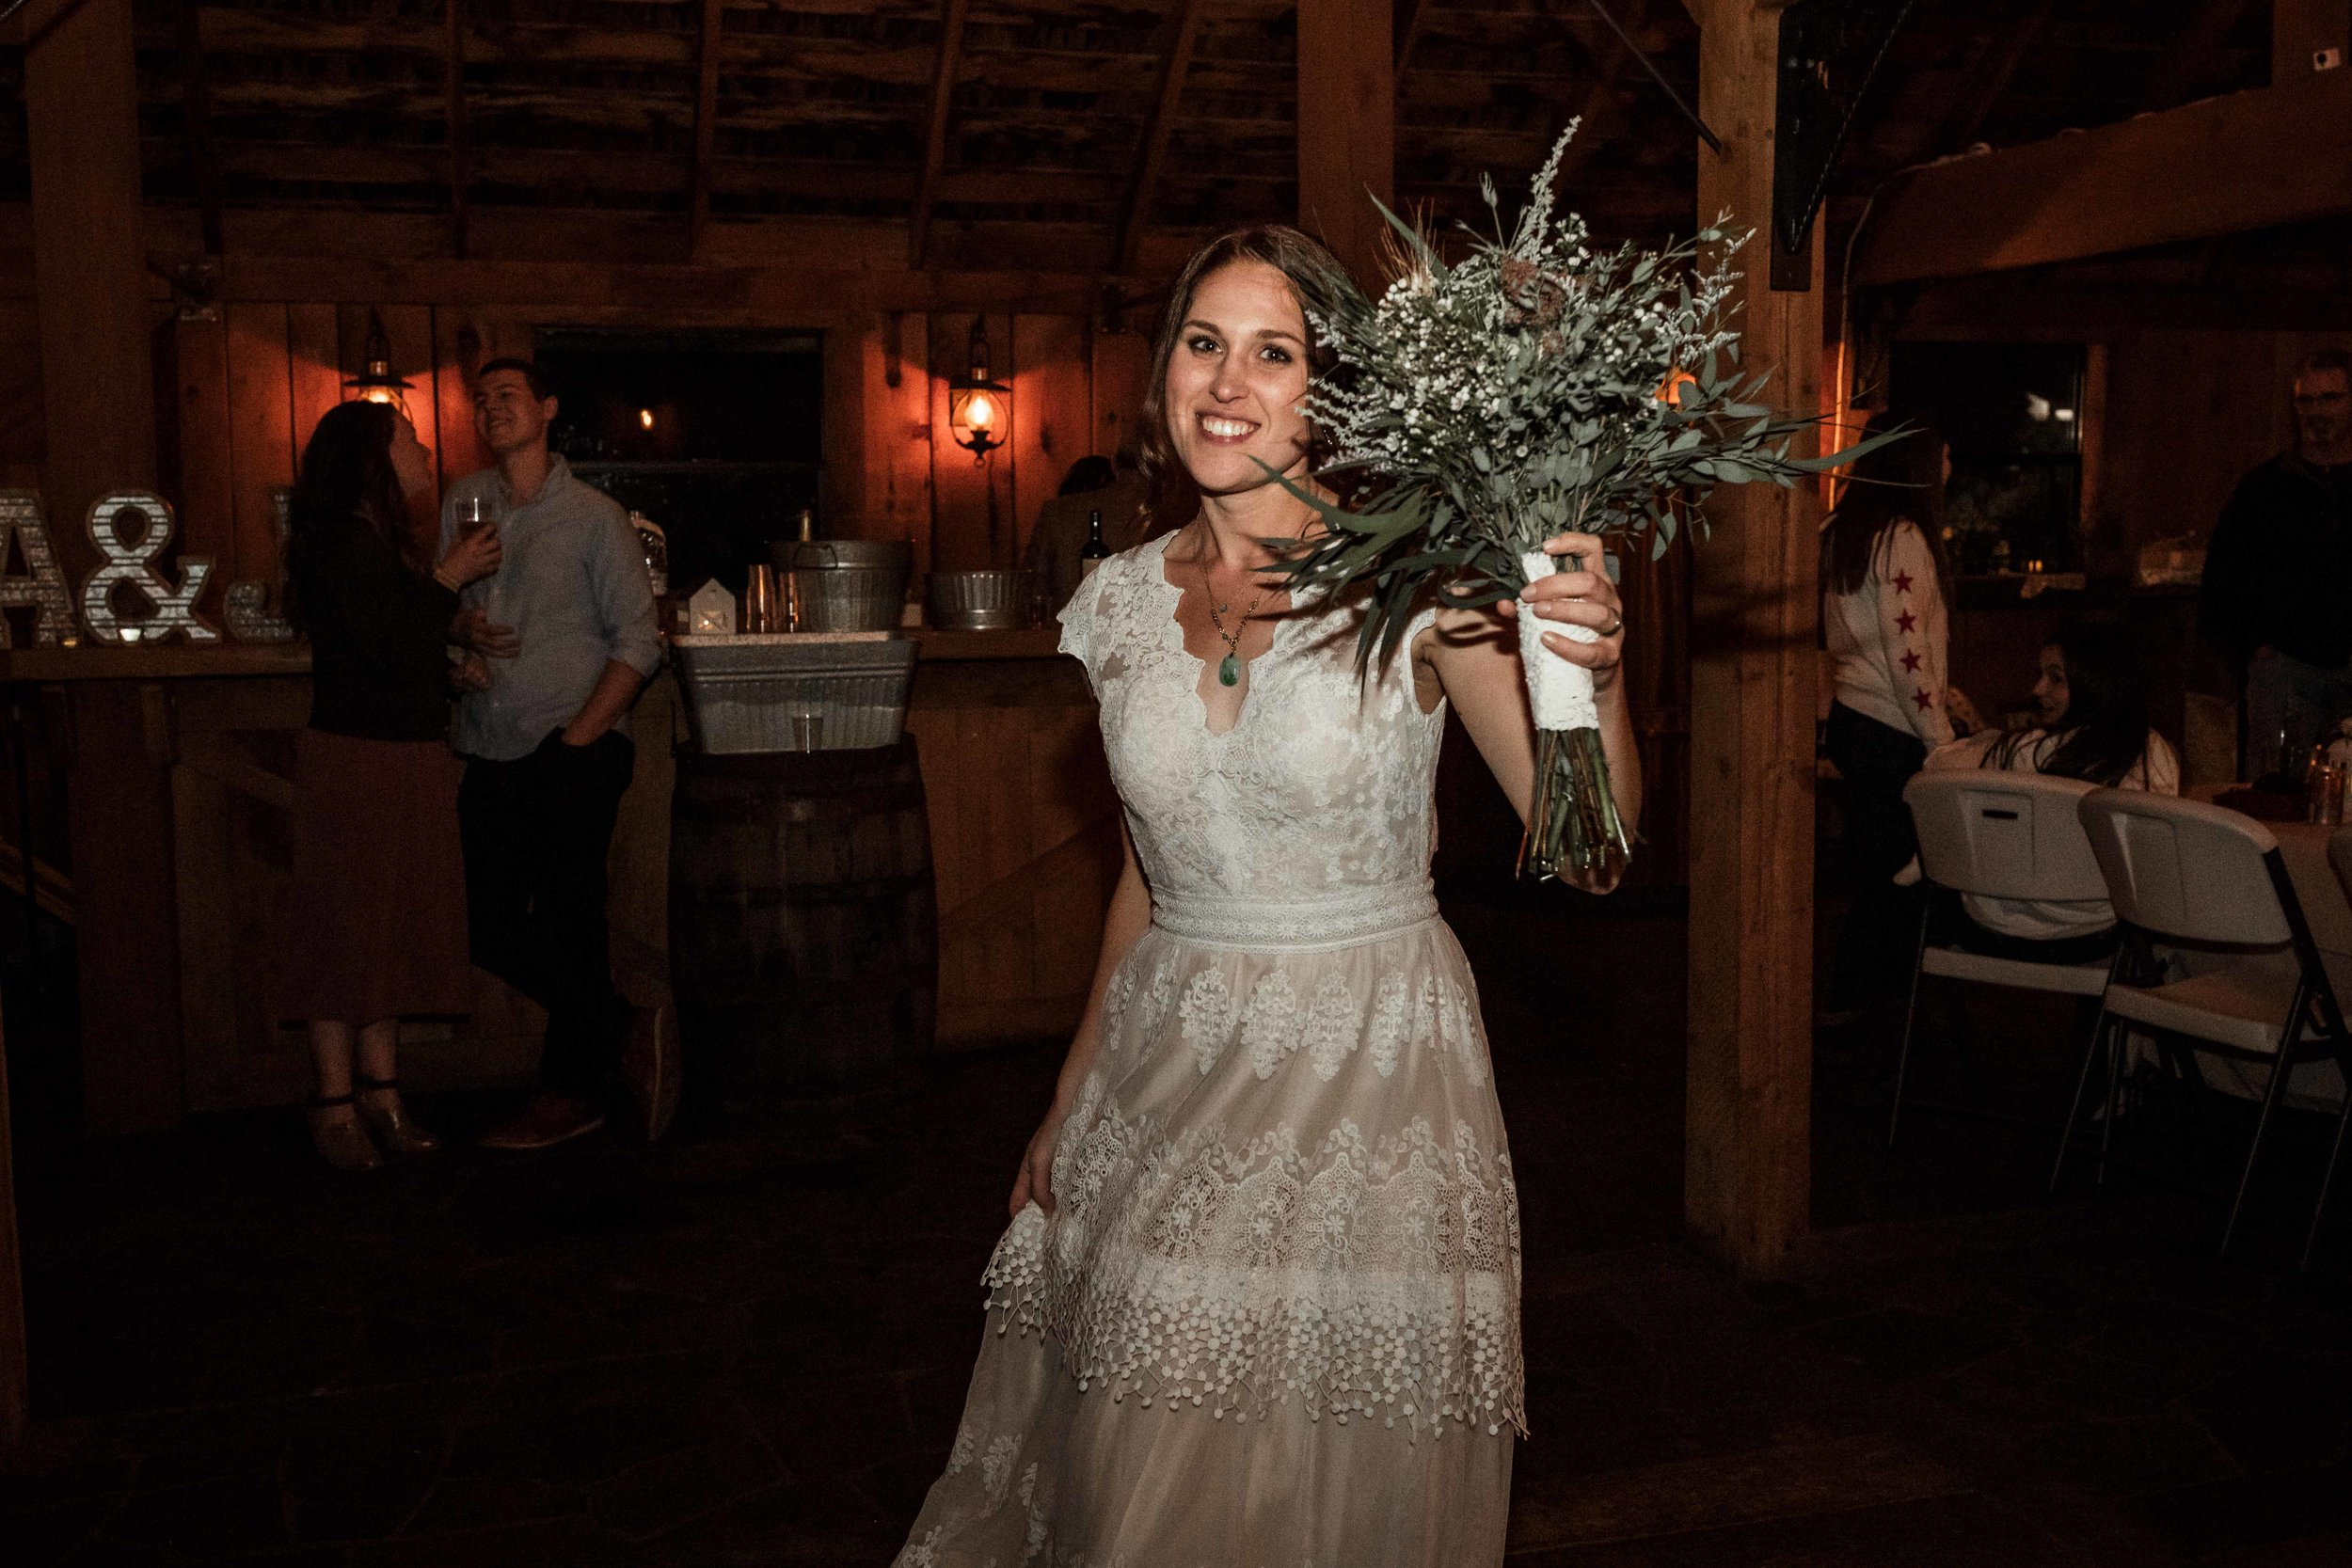 the-cattle-barn-wedding-98.jpg